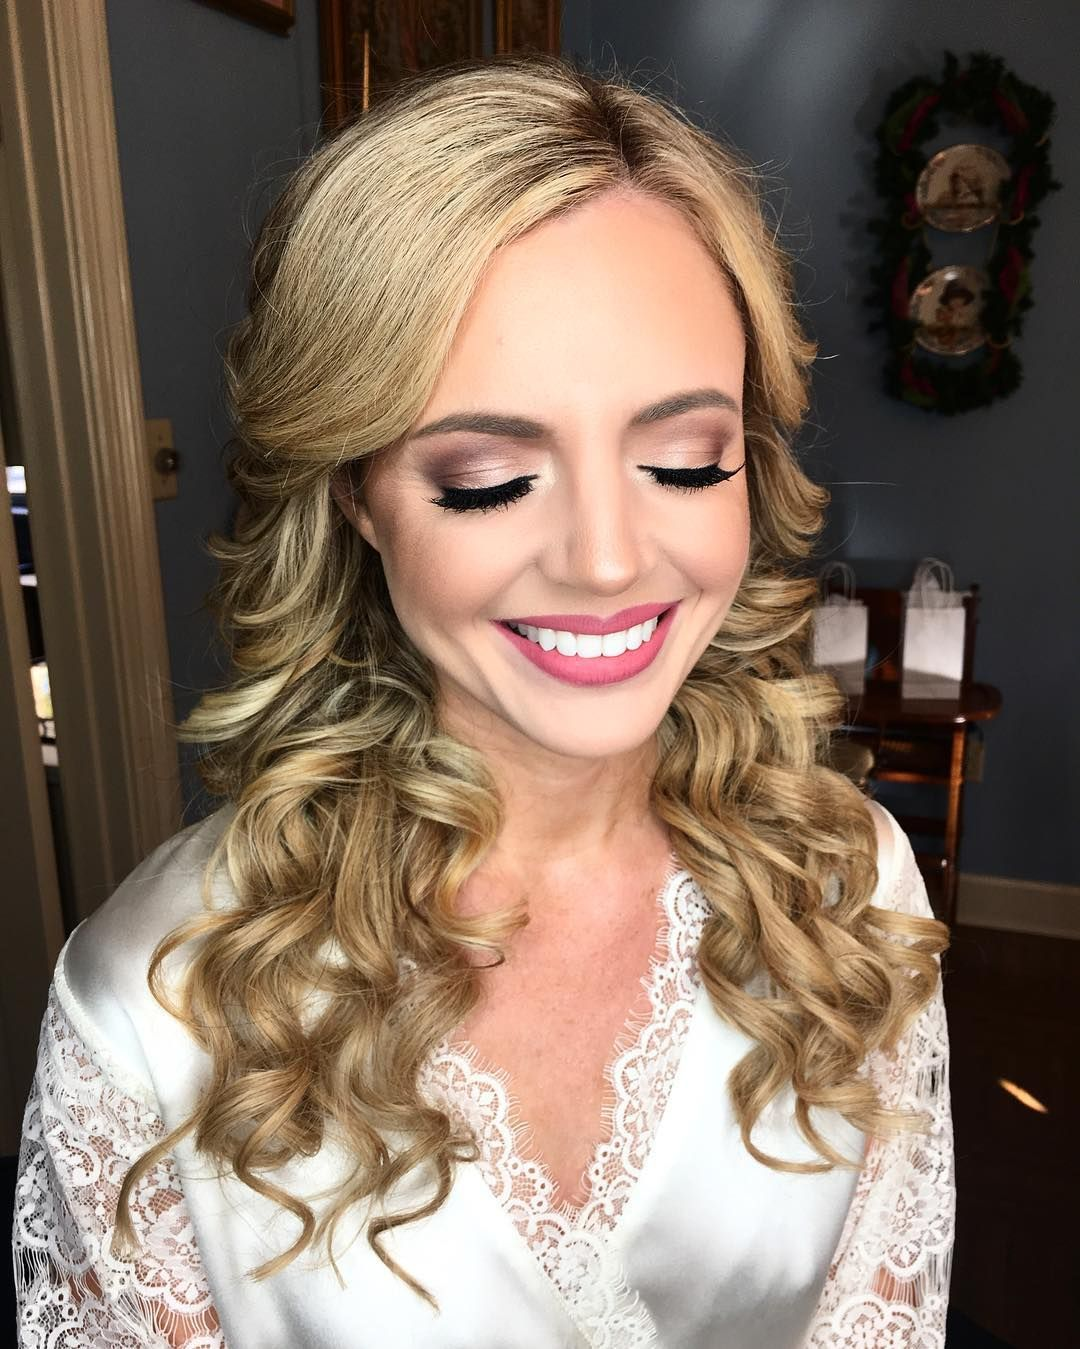 """makeup by mari m on instagram: """"another look of the bride"""